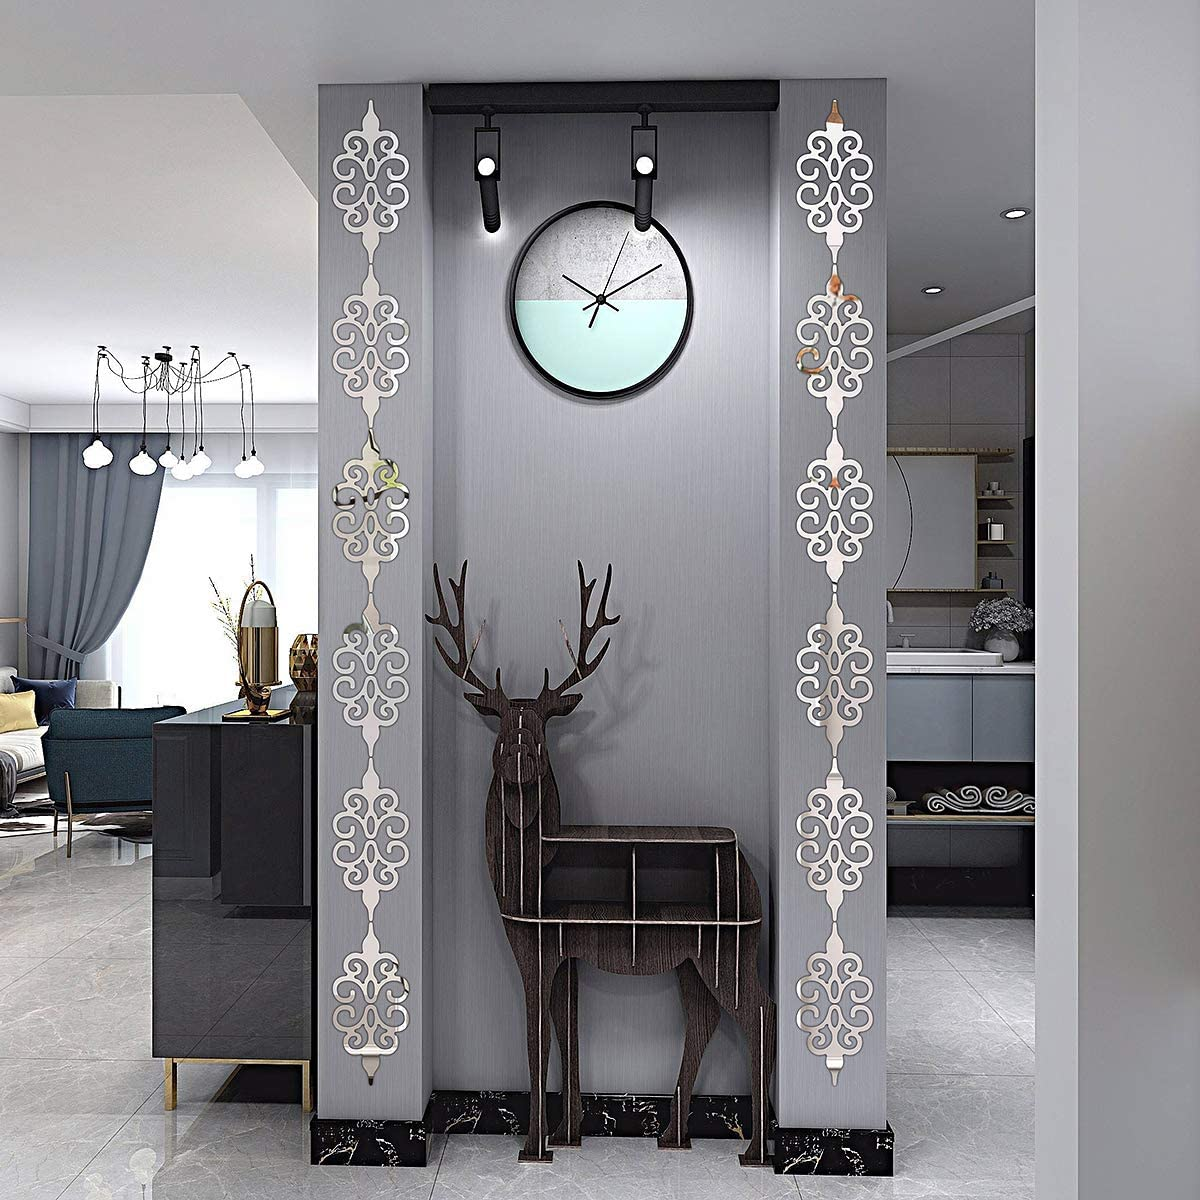 Acrylic Mirror Wall Stickers,Mirror Wall Decals,DIY Hollow Mirror Wall Decor,Self Adhesive Mirrors Stickers for Home Decoration(Silver,10 Pcs )